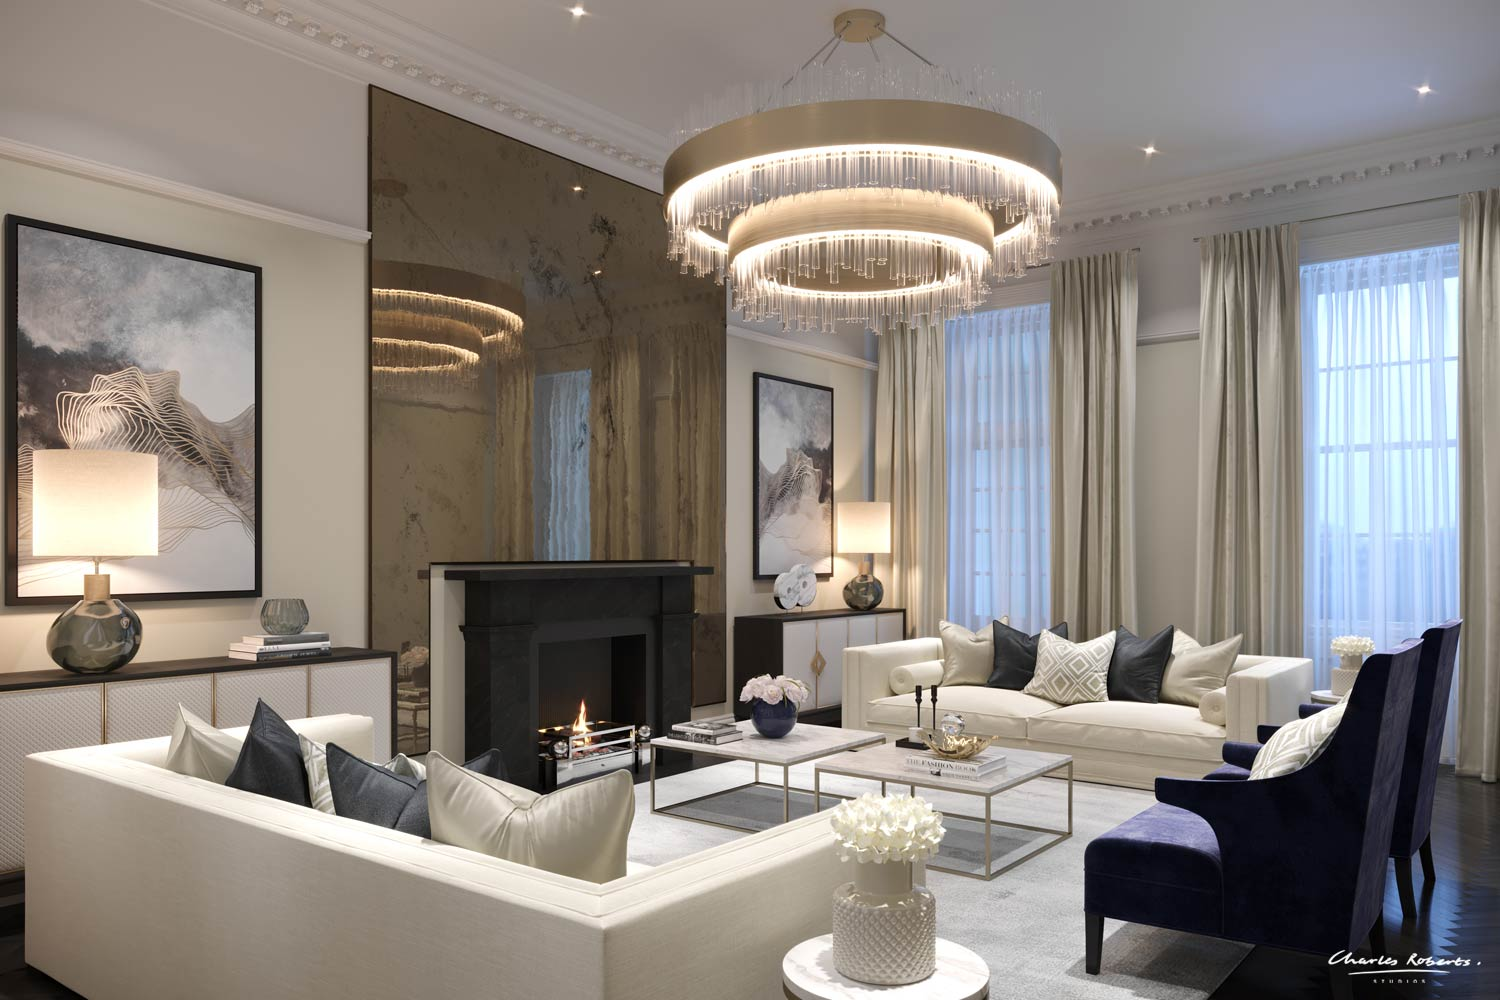 images of living rooms with interior designs chair rail ideas for room artists impression luxury design computer generated image the reception